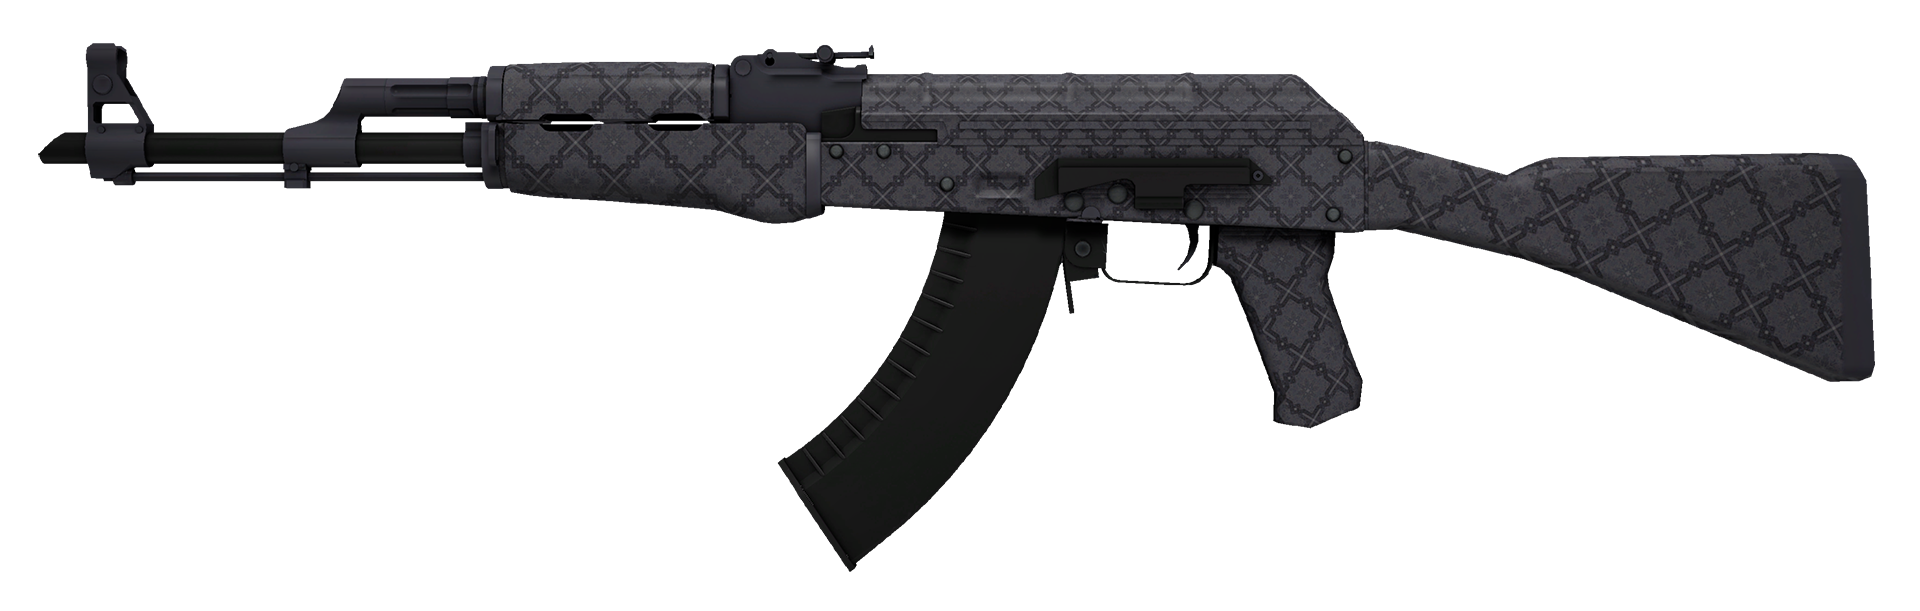 AK-47 Baroque Purple Large Rendering